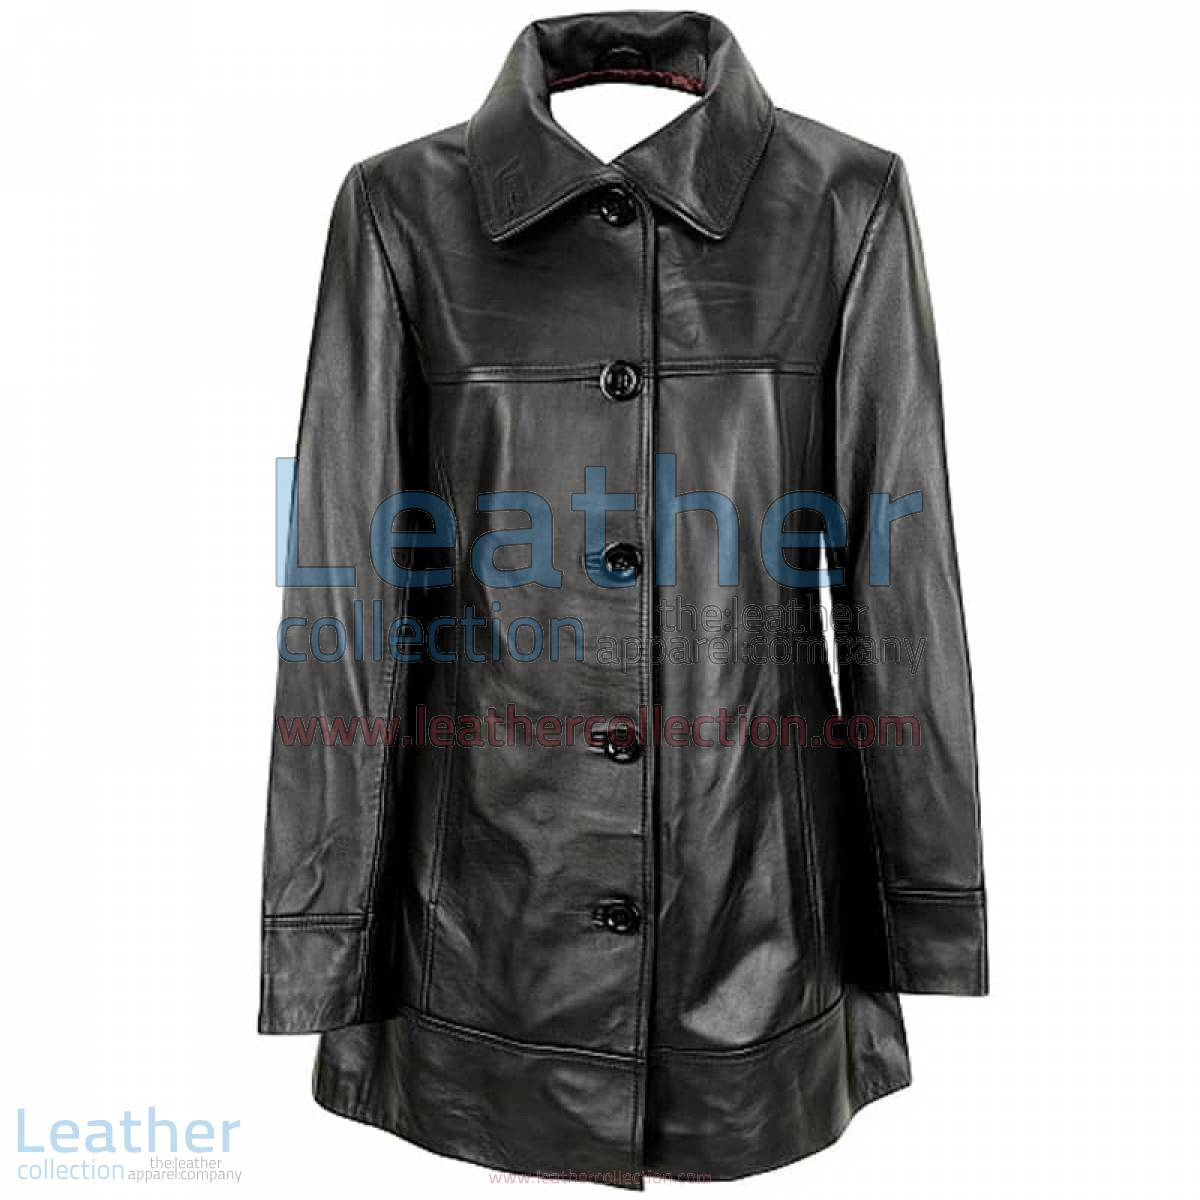 6 Button Leather Coat | button coat